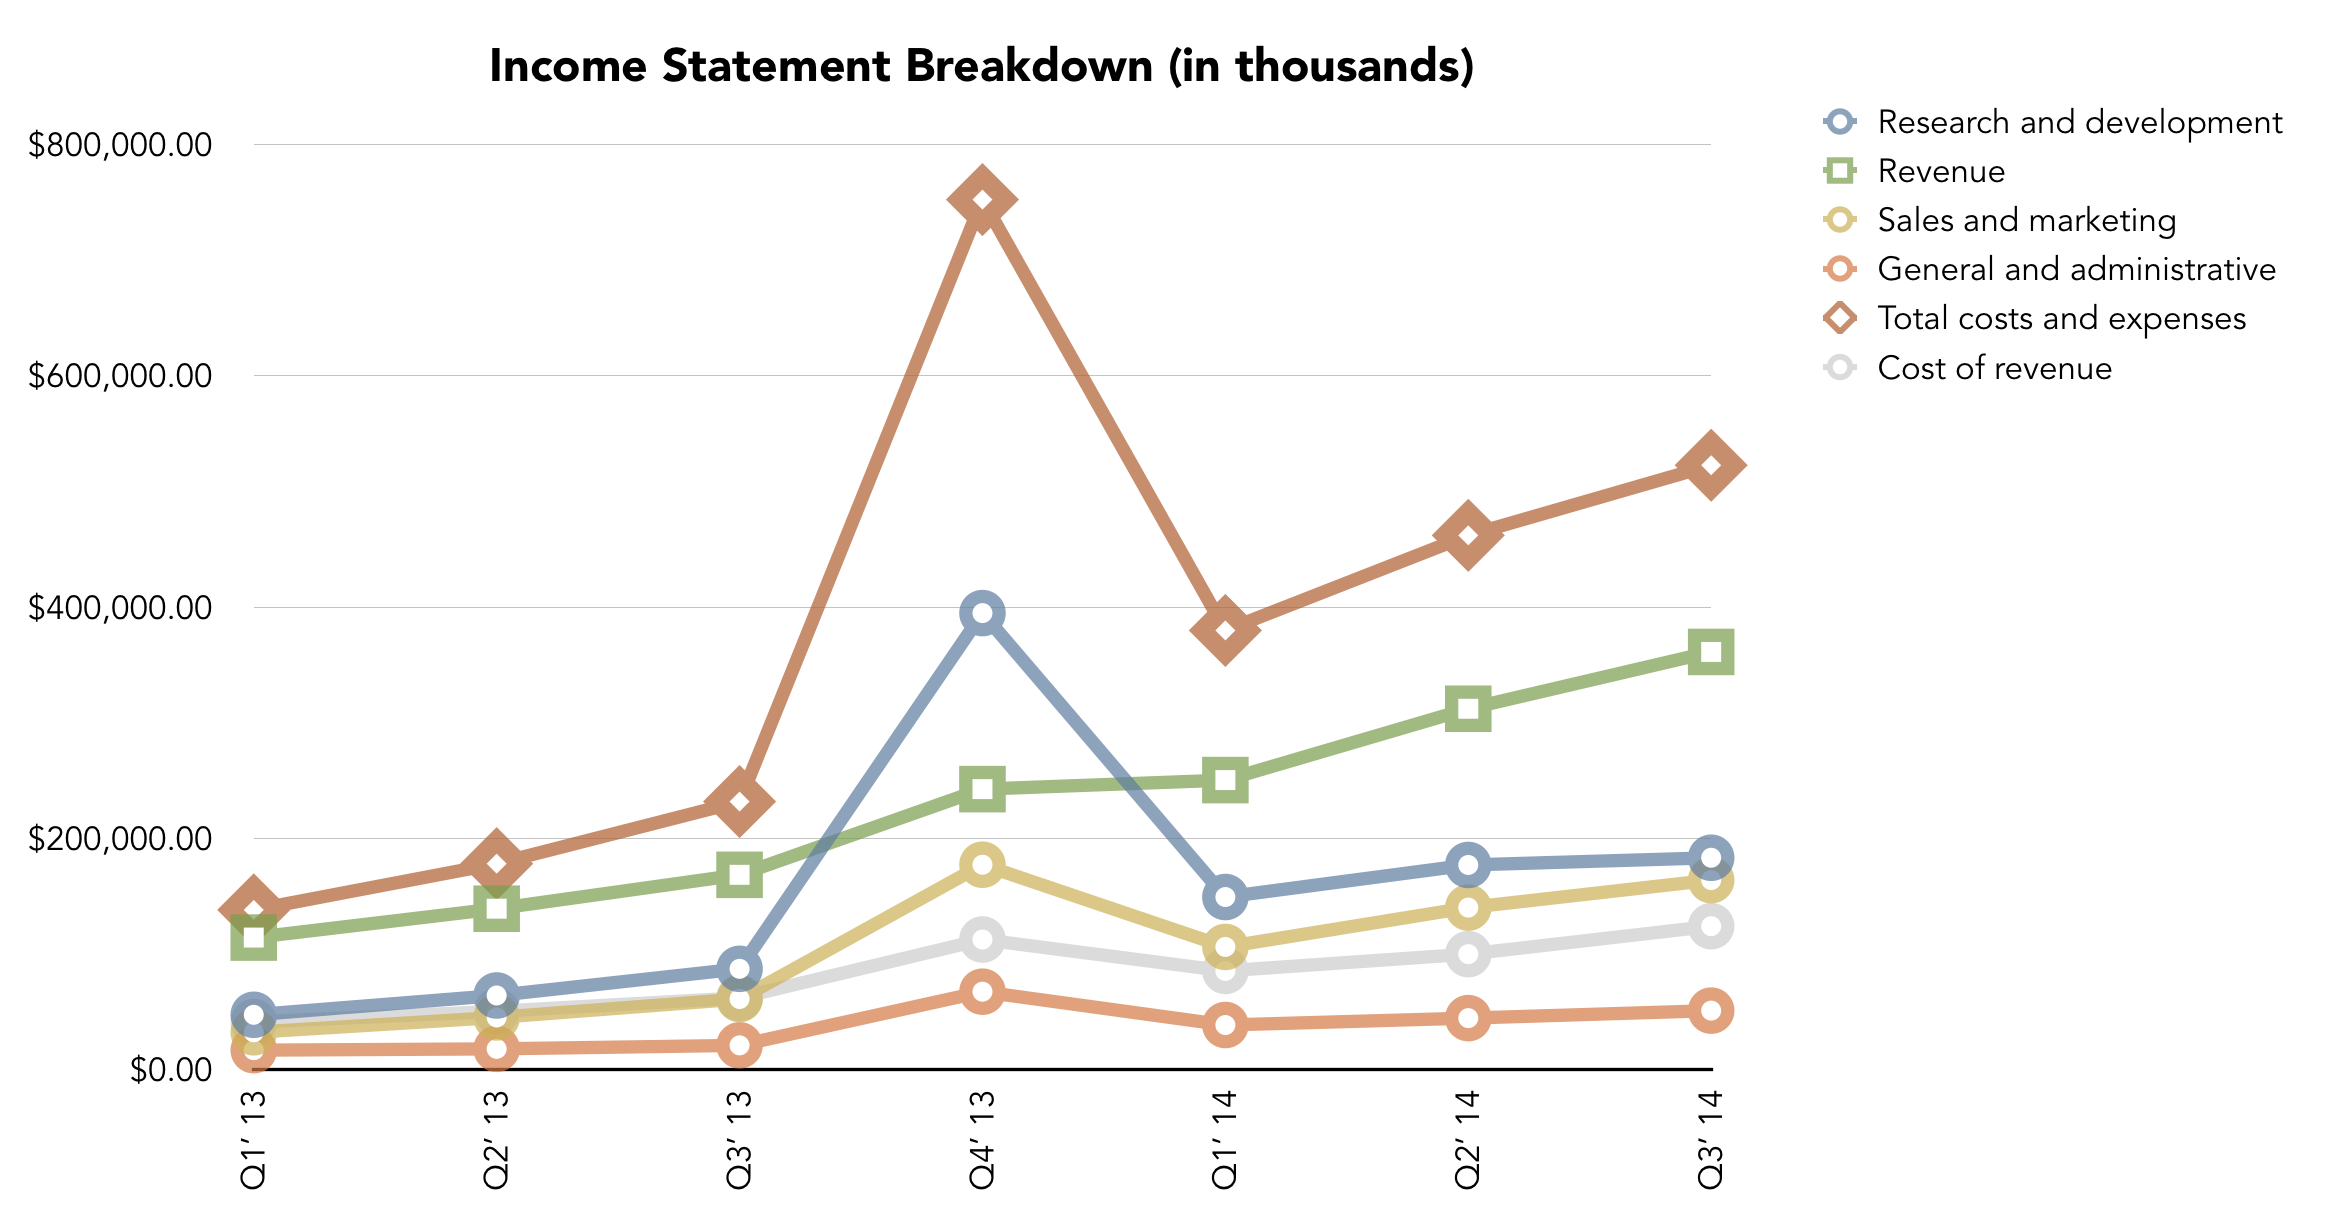 Income Statement Breakdown